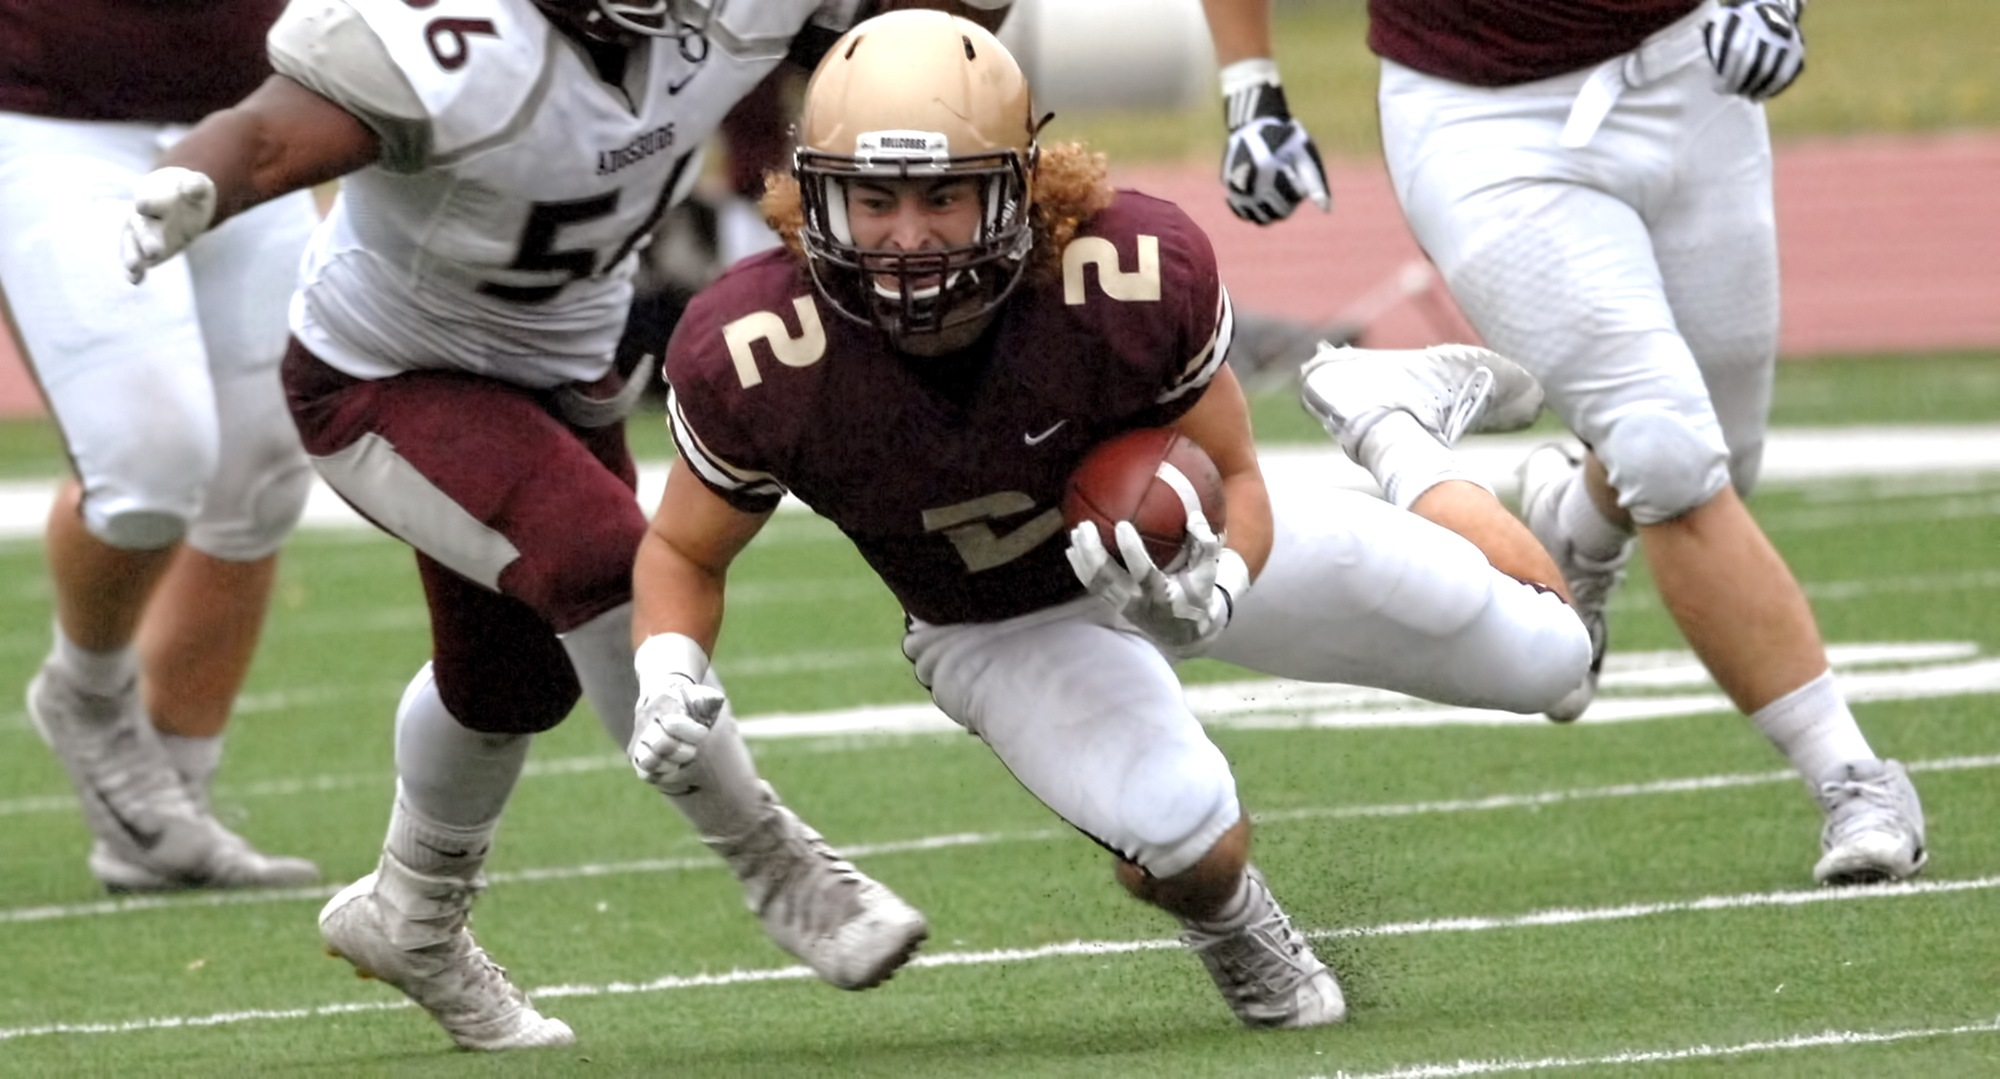 Senior Austin Maanum rushed for two touchdowns in the Cobbers' 35-12 win at Carleton.